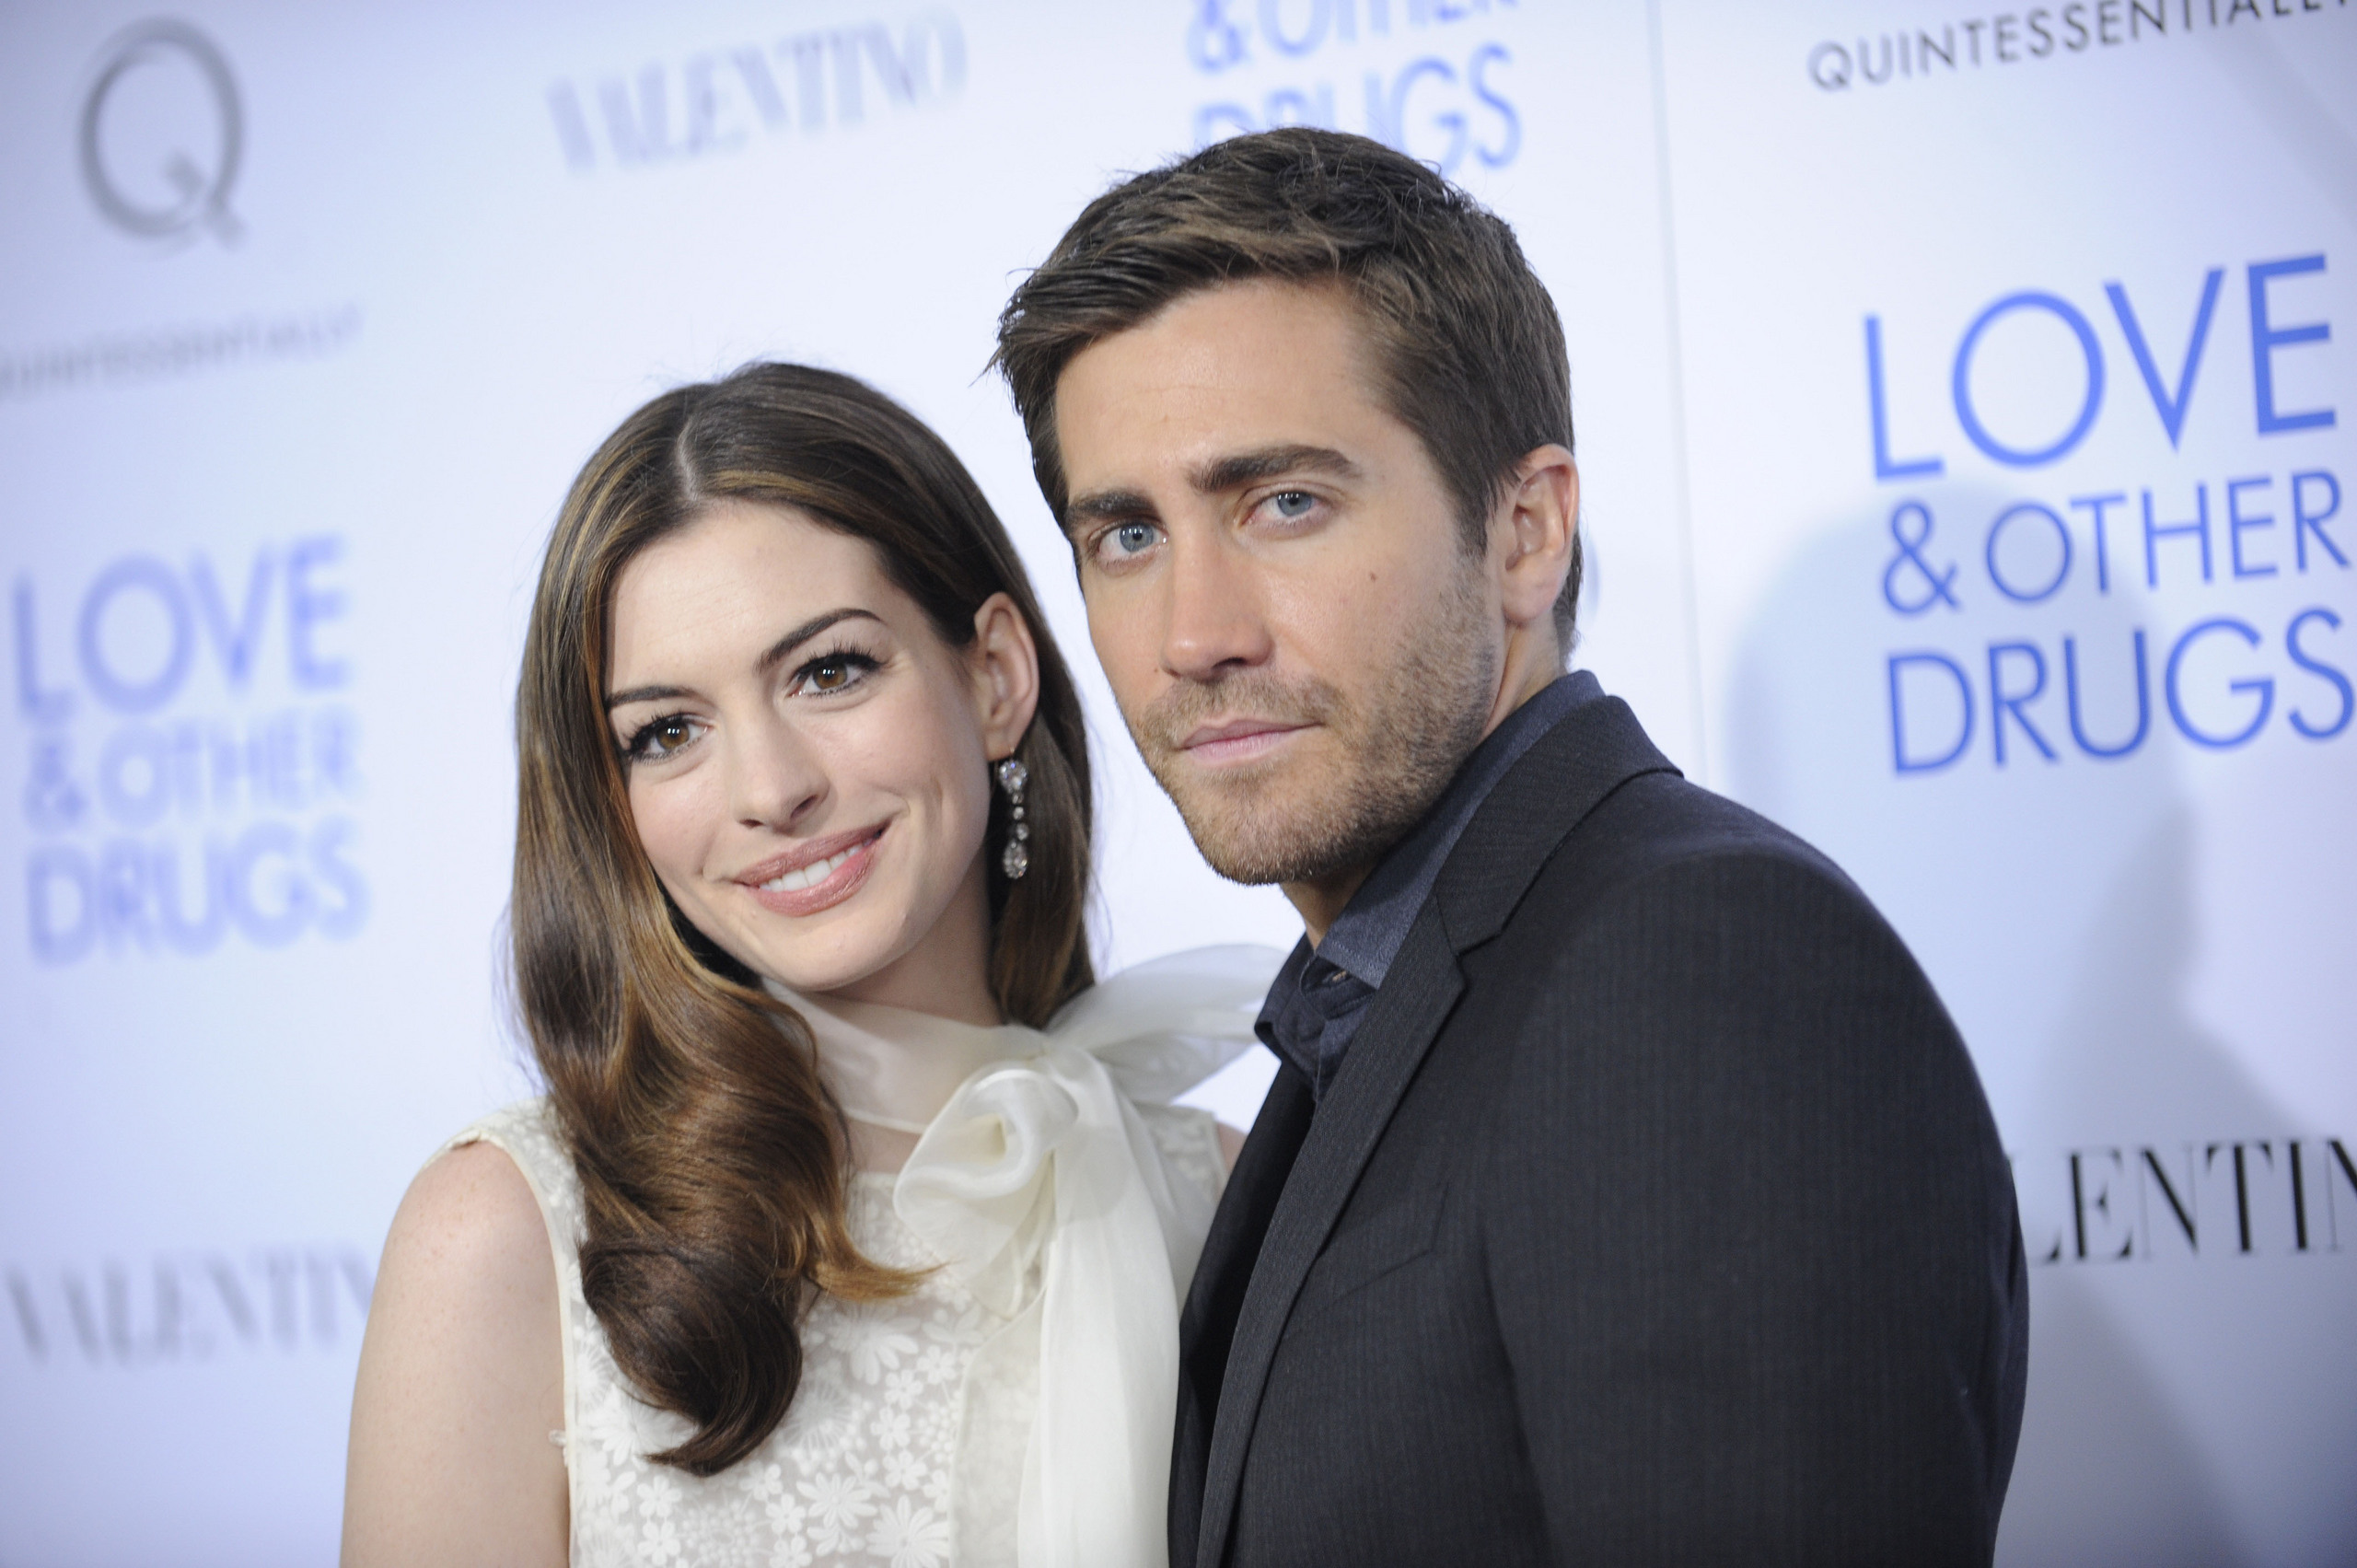 anne hathaway ve jake gyllenhaal love other drugs jake gyllenhaal and anne hathaway movie imdb